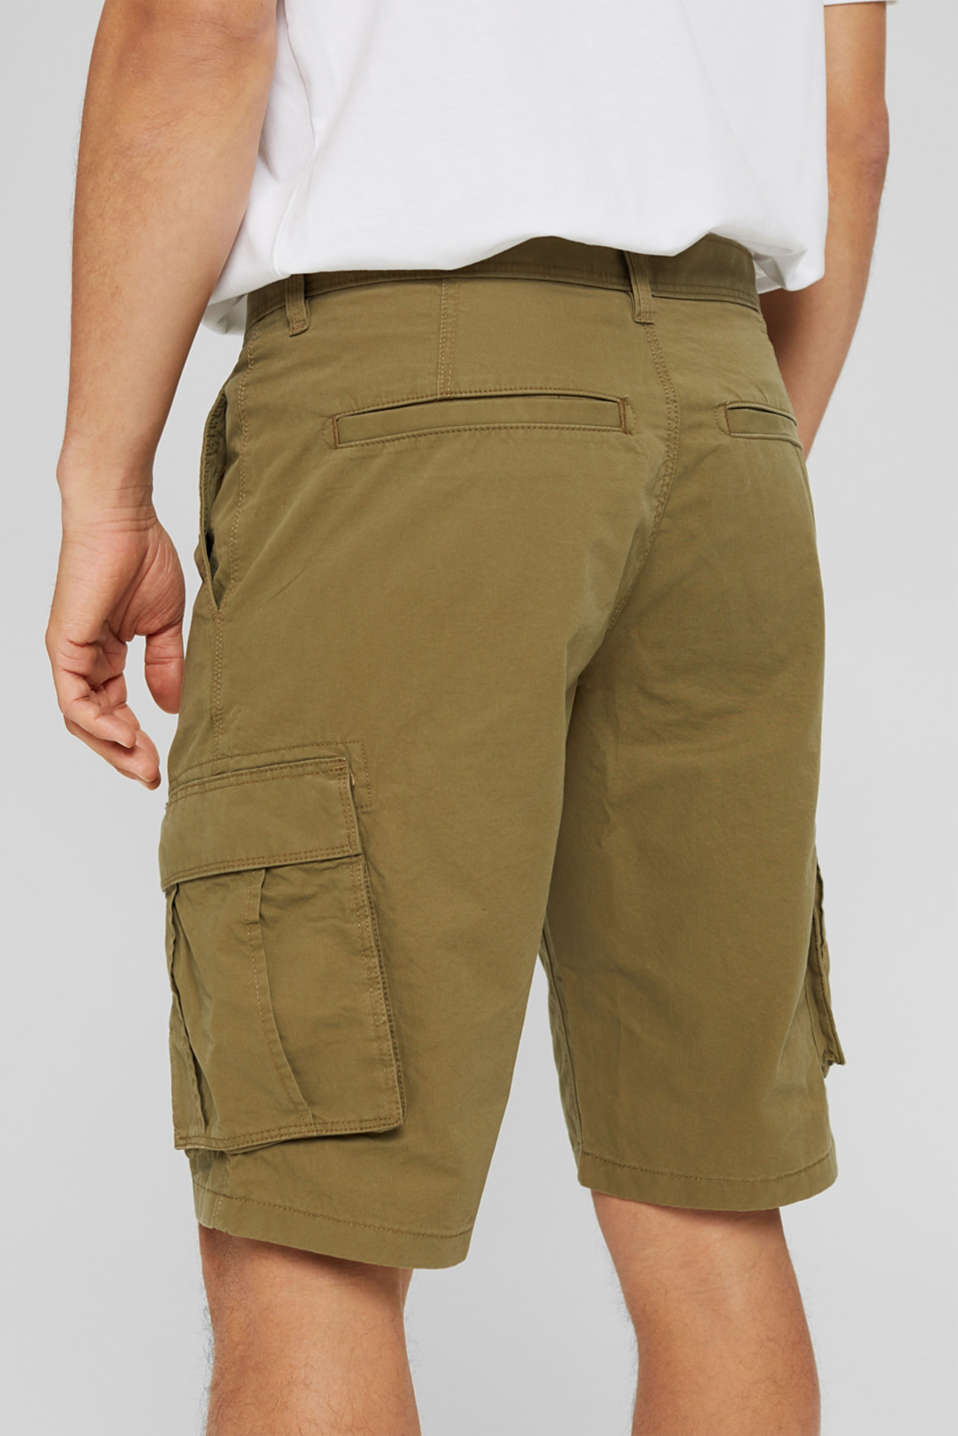 Shorts woven Relaxed fit, OLIVE, detail image number 5